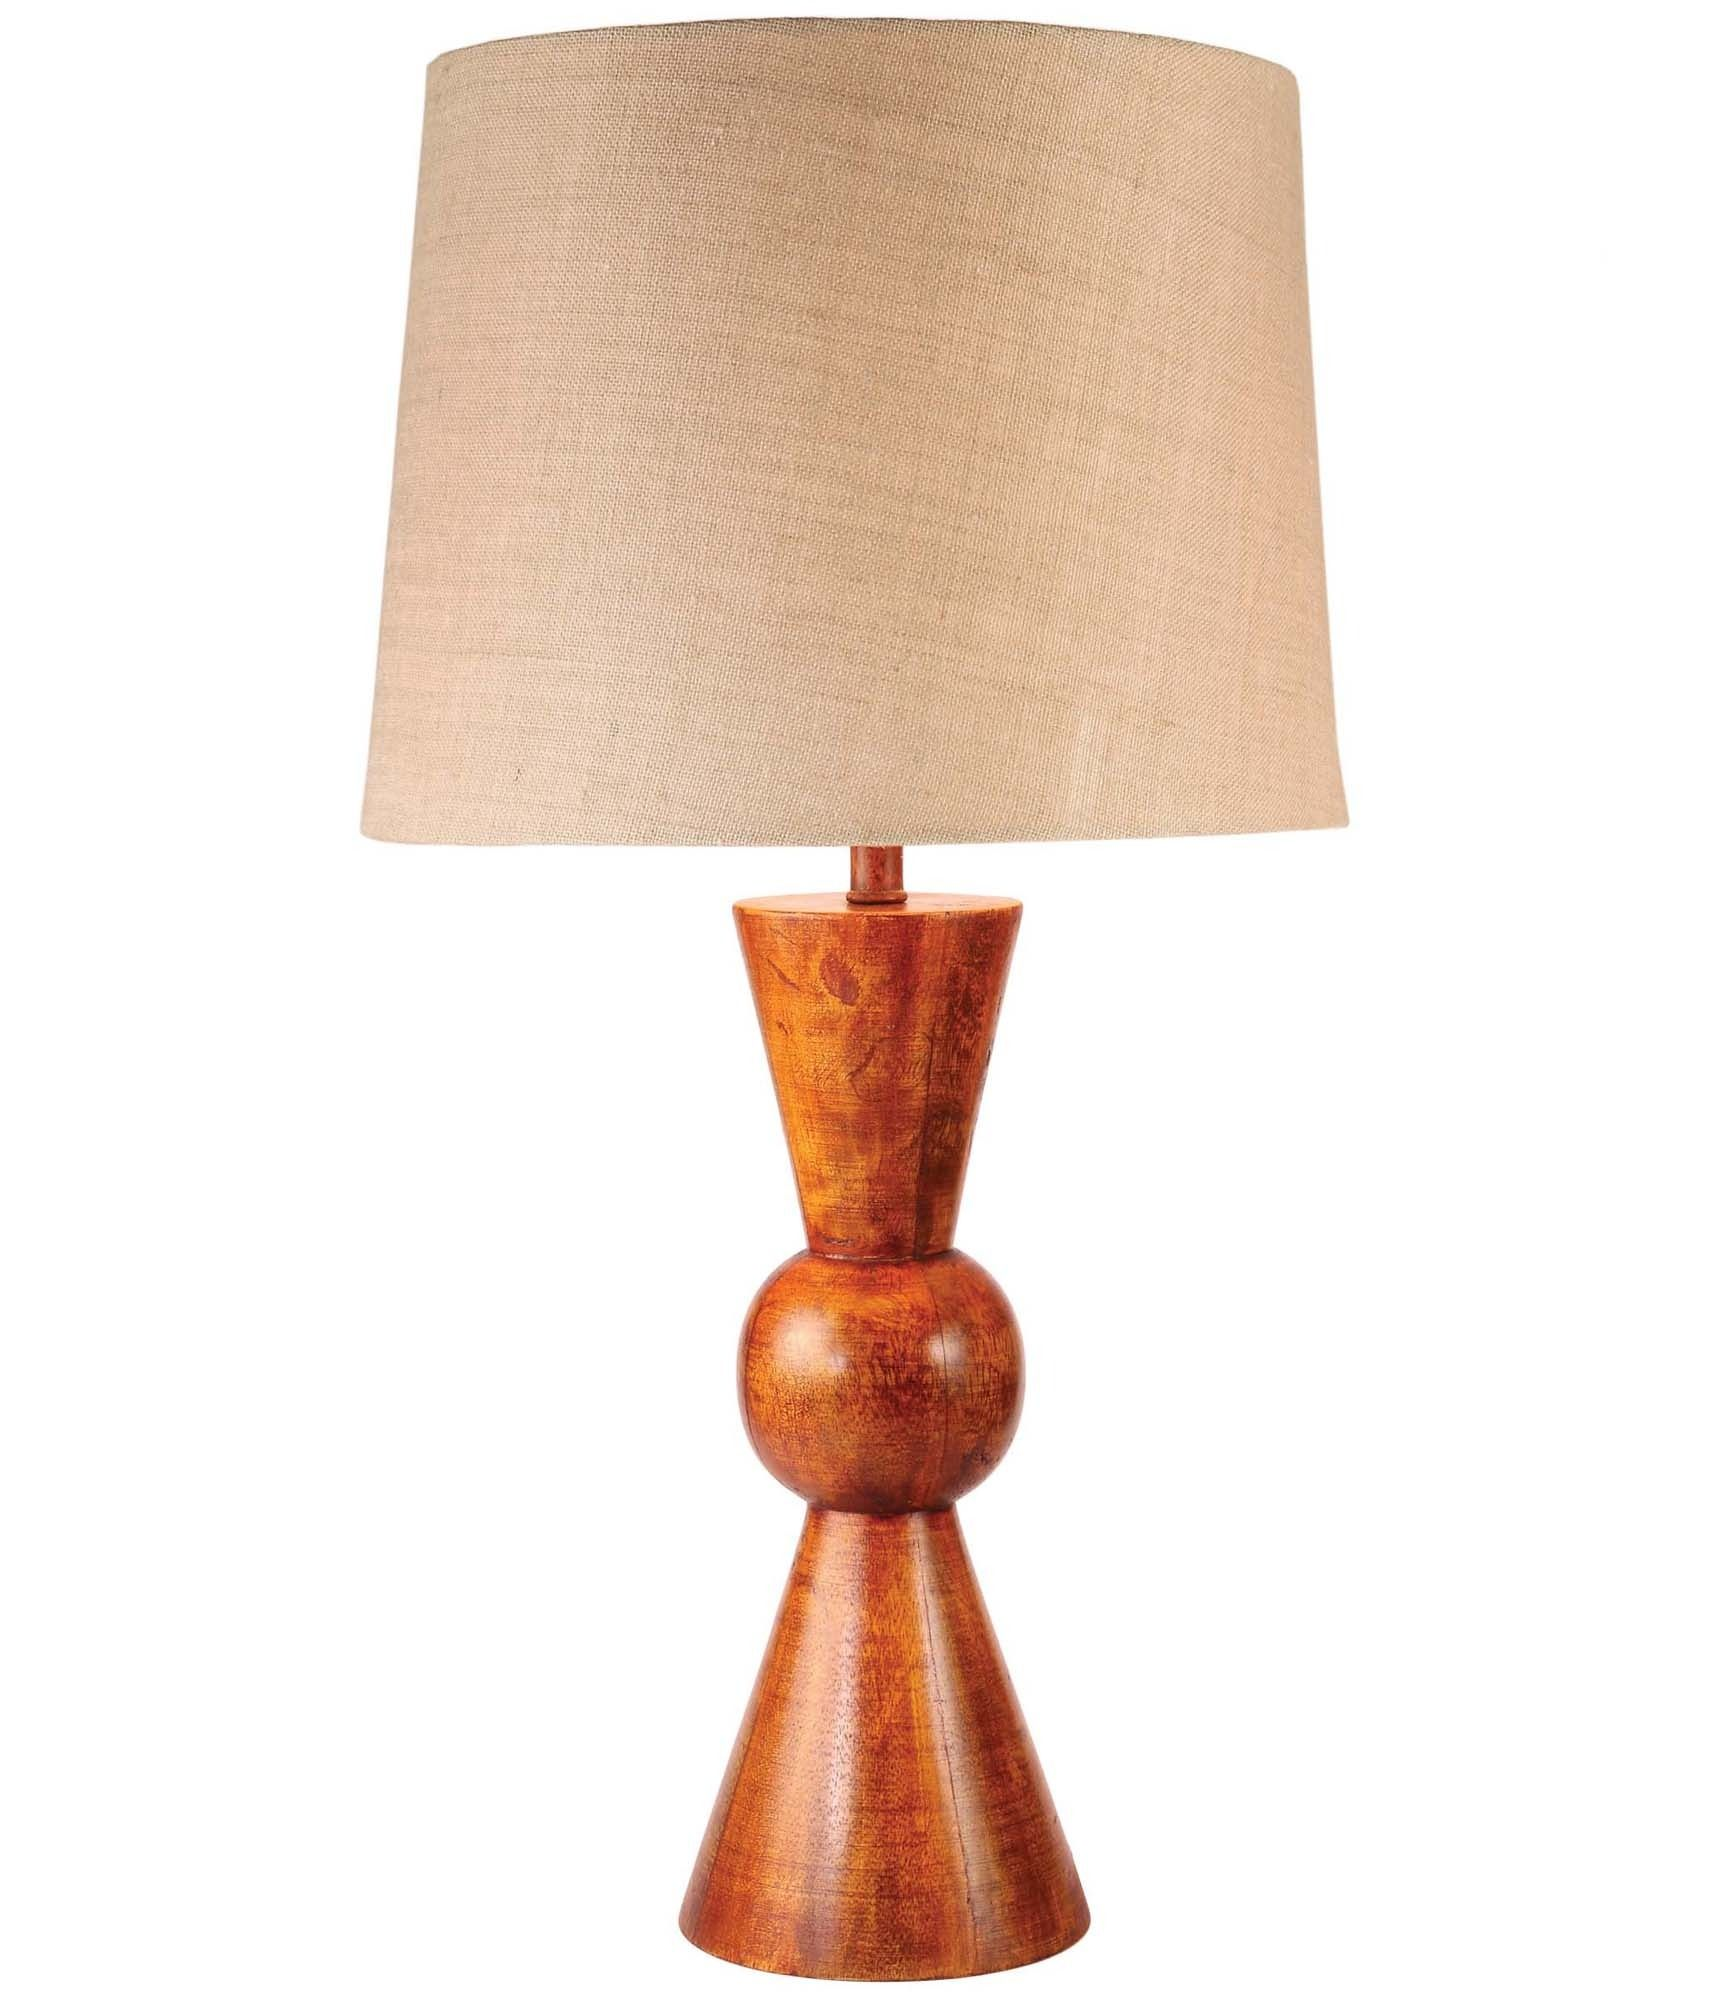 Hampton Bay 19 25 In Stick Table Lamp Brushed Nickel Finish Hw T2824lst Table Lamp Lamp Tiffany Style Table Lamps